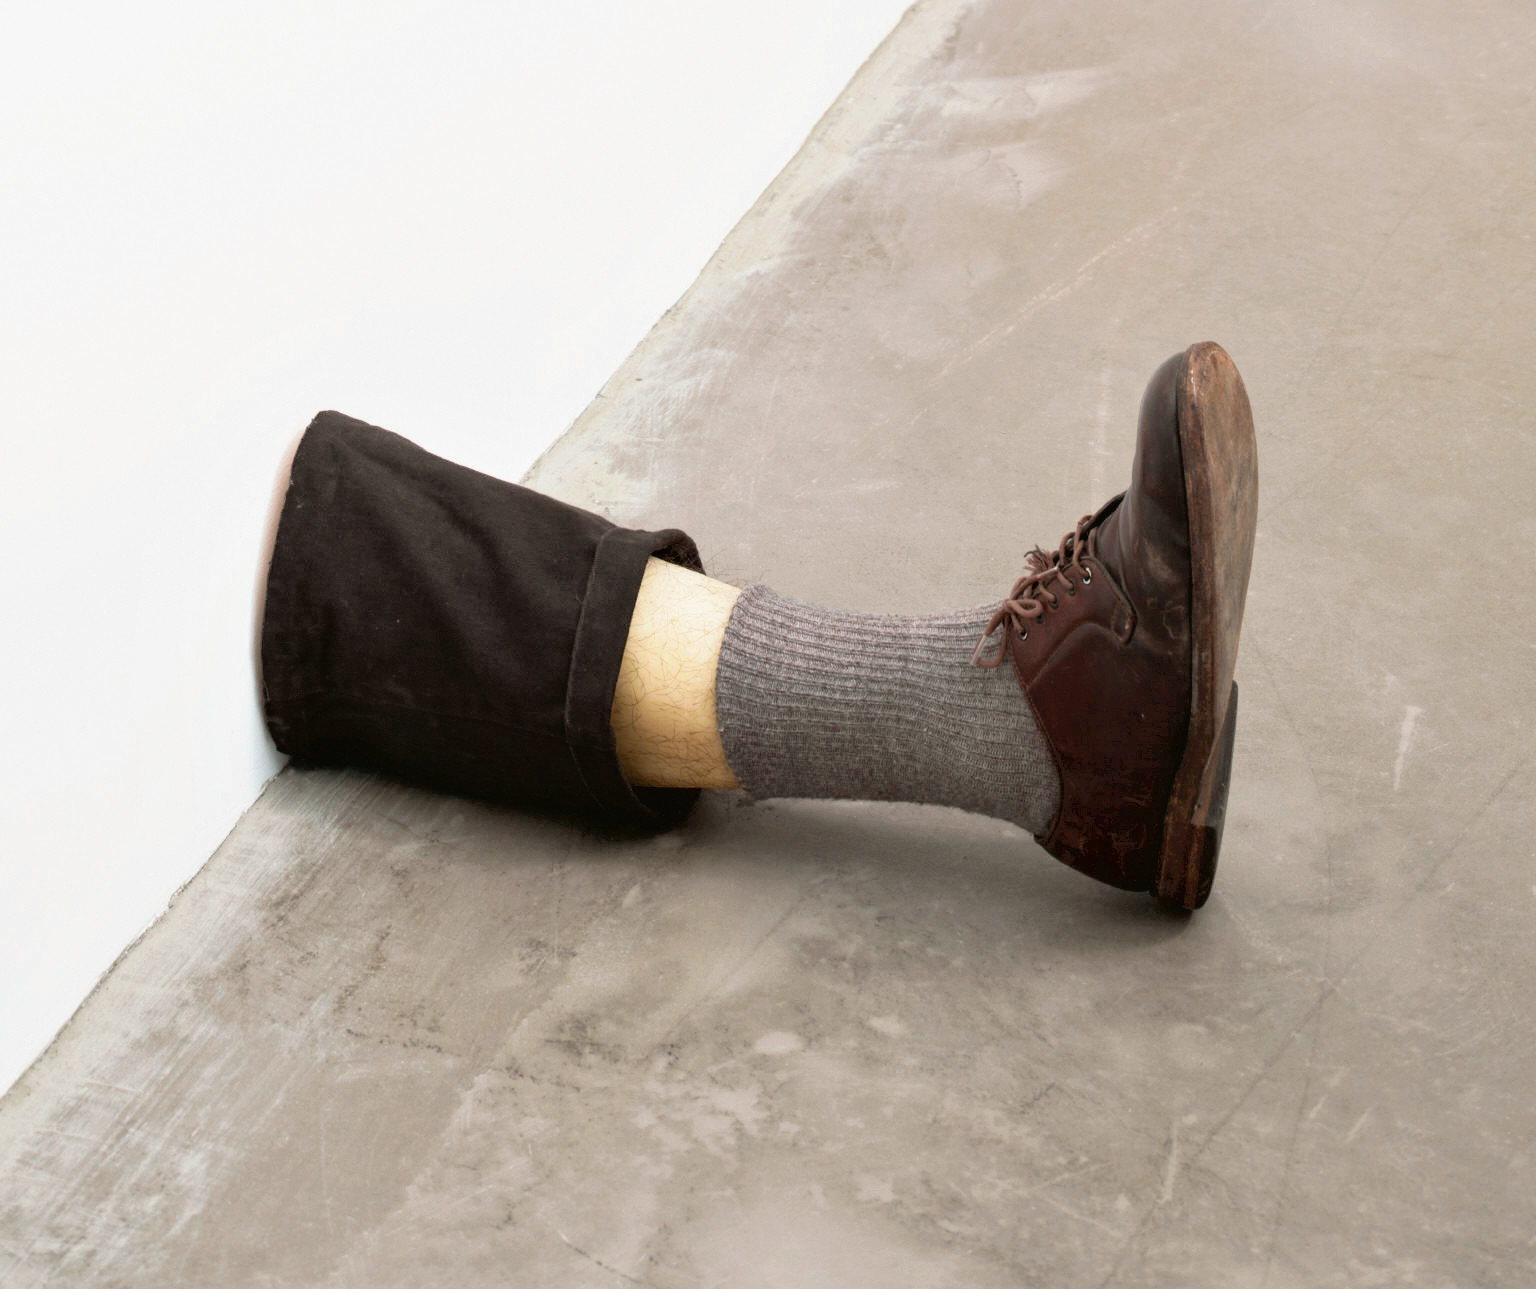 Robert Gober (American, born 1954). Untitled Leg. 1989–90. Beeswax, cotton, wood, leather, human hair, 11 3/8 x 7 3/4 x 20″ (28.9 x 19.7 x 50.8 cm). The Museum of Modern Art, New York. Gift of the Dannheiser Foundation. © 2014 Robert Gober